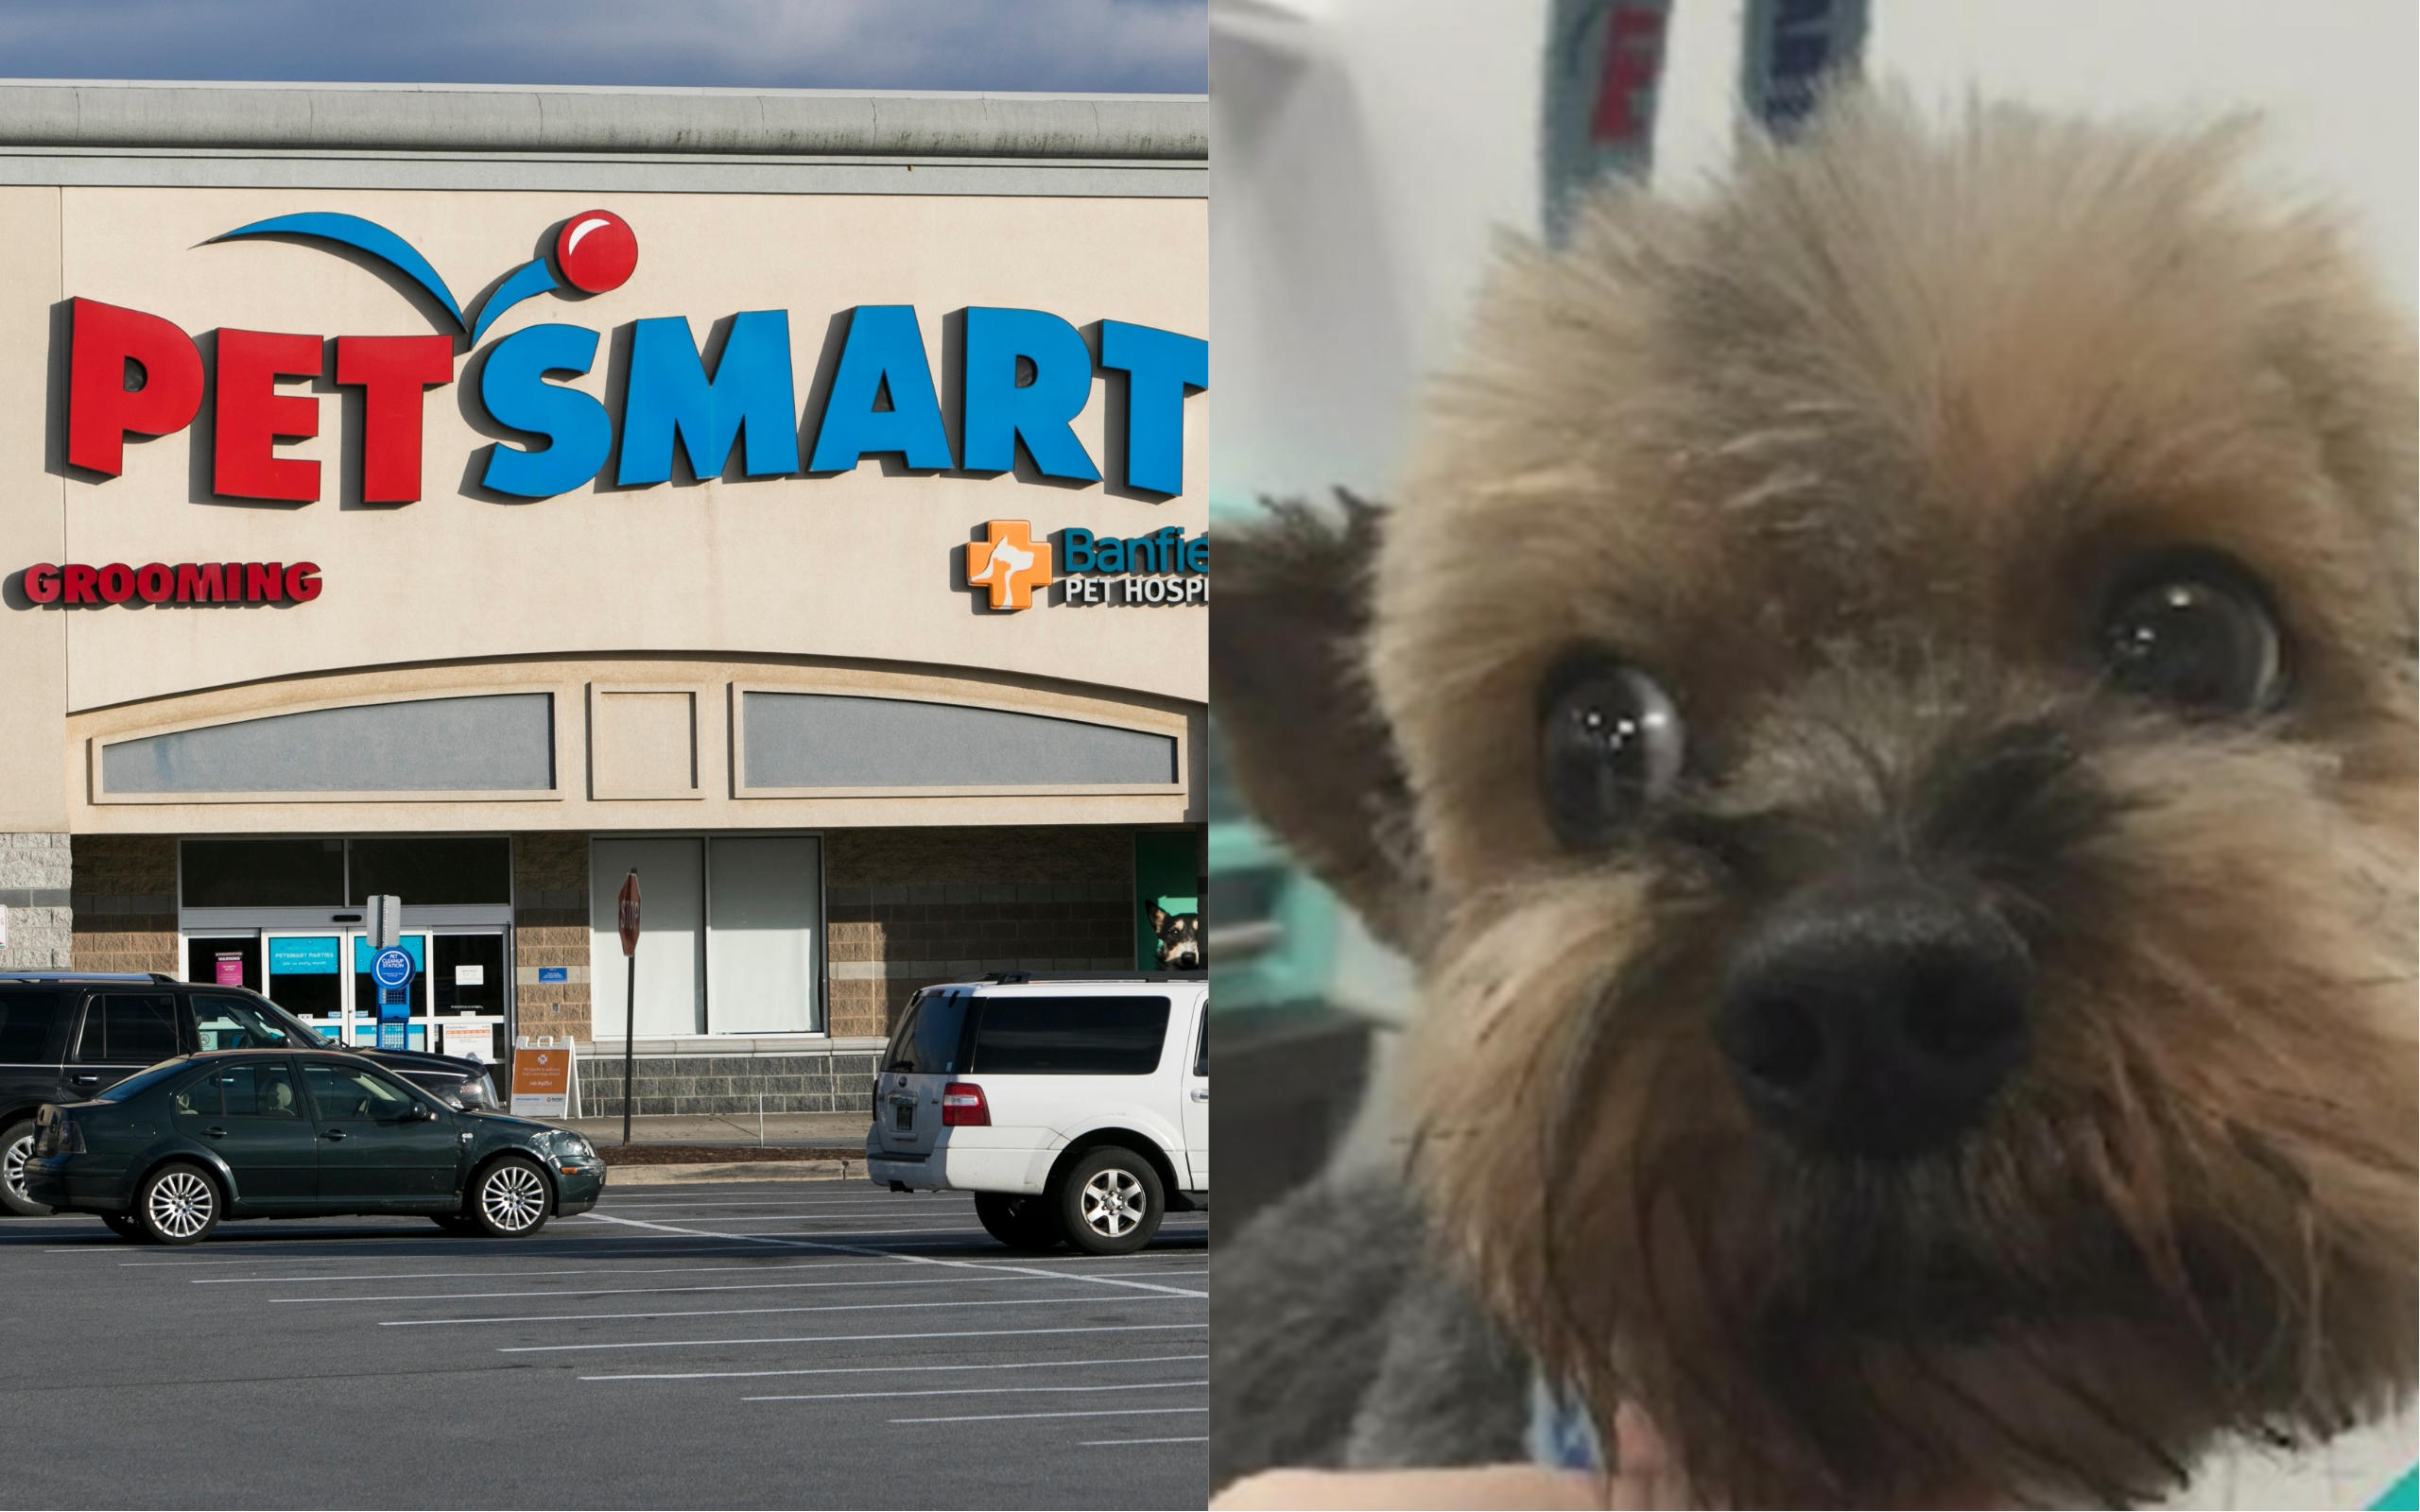 Best Dog Trimmers 2020 Investigation finds 47 dogs died after grooming at PetSmart over